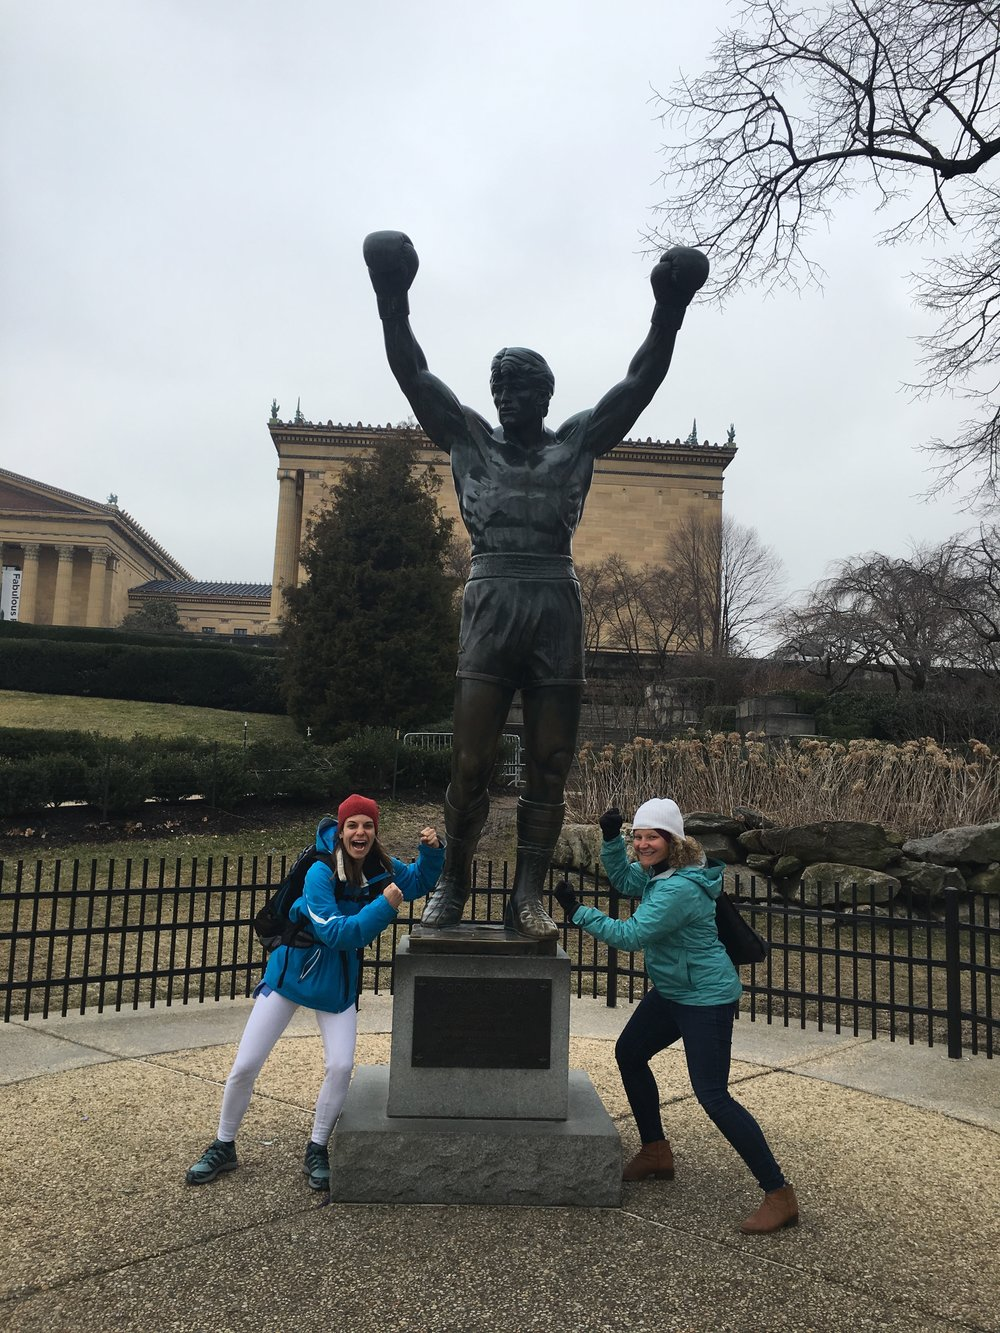 Stephanie and I checked out the Rocky statue at the Philadelphia Museum of Art.